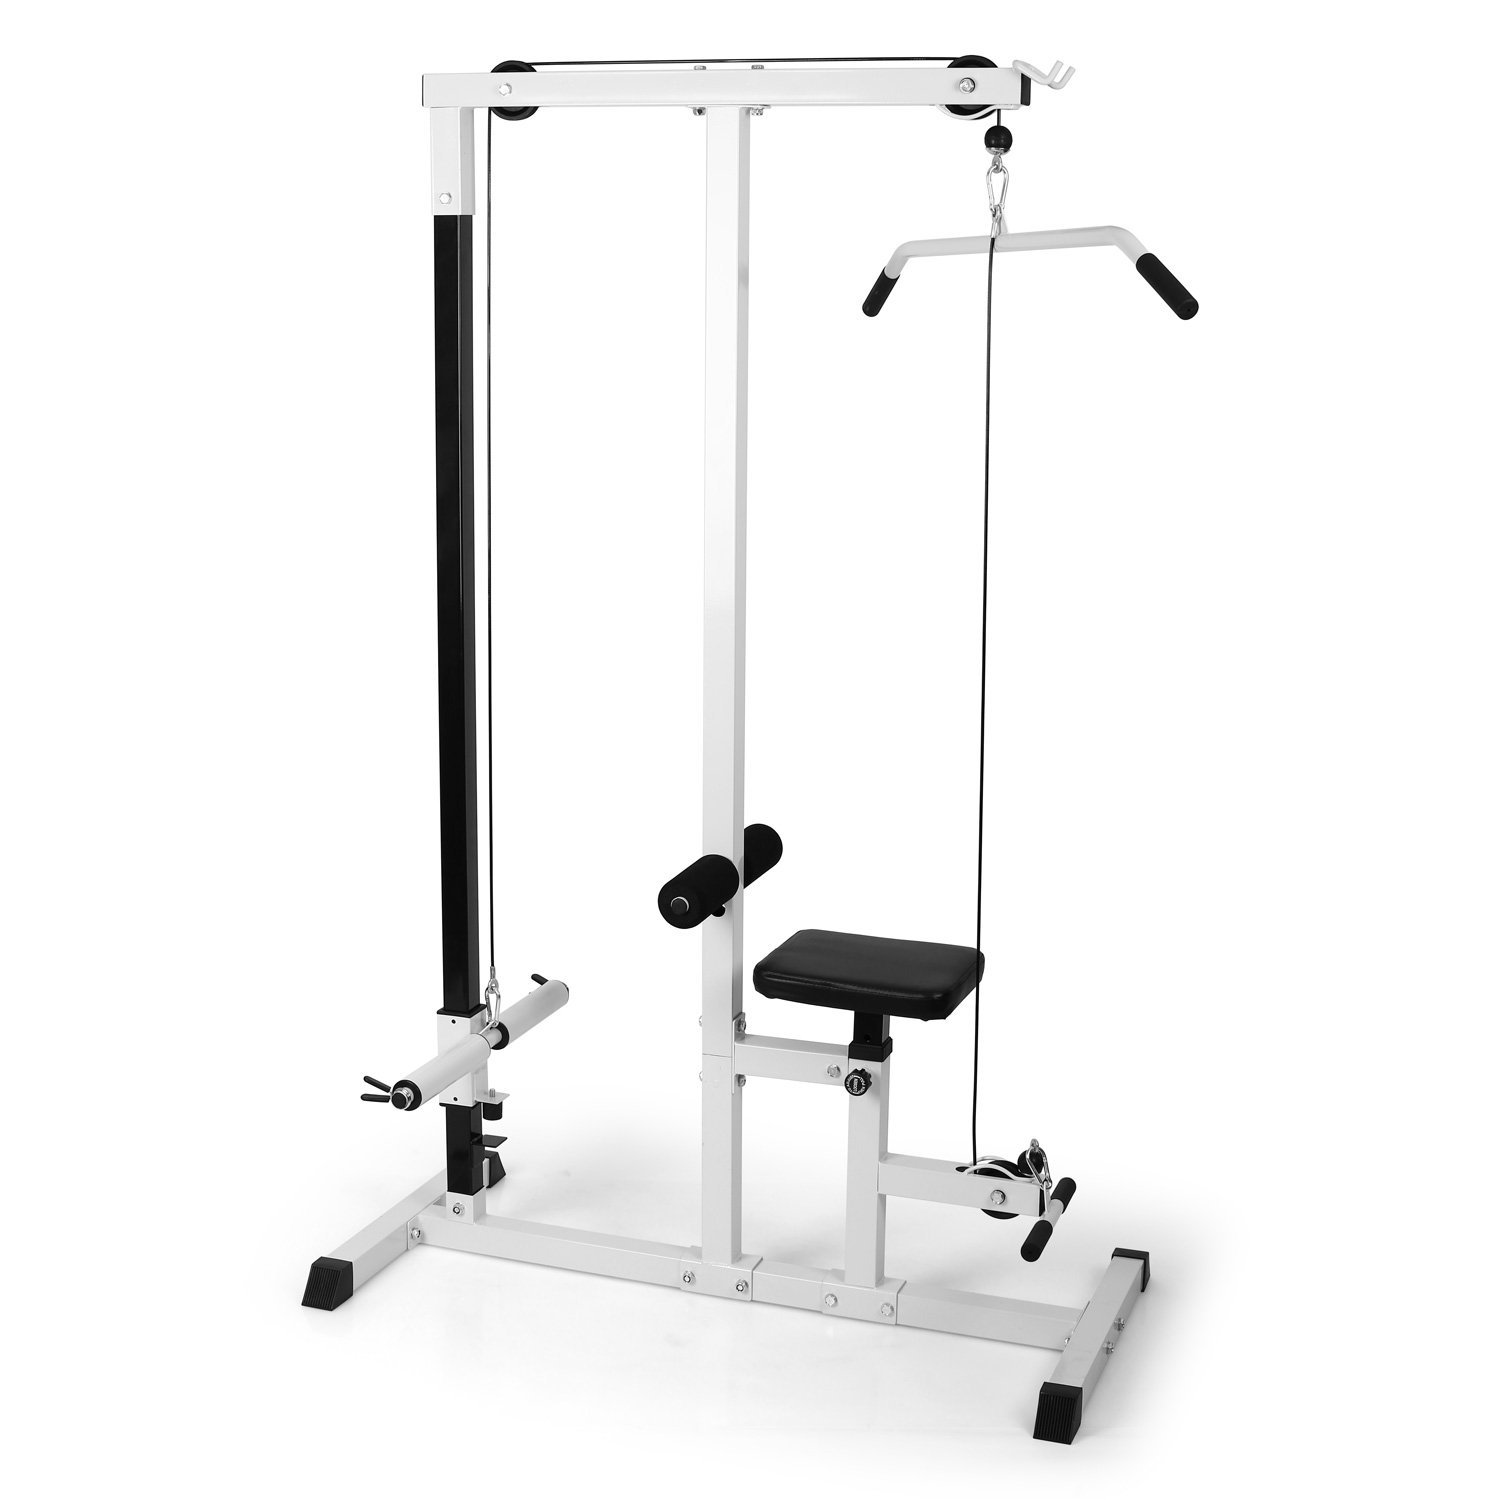 HOME FITNESS MULTI GYM LAT PULL DOWN WORKSTATION WORK OUT MACHINE BENCH EXERCISE Enlarged Preview